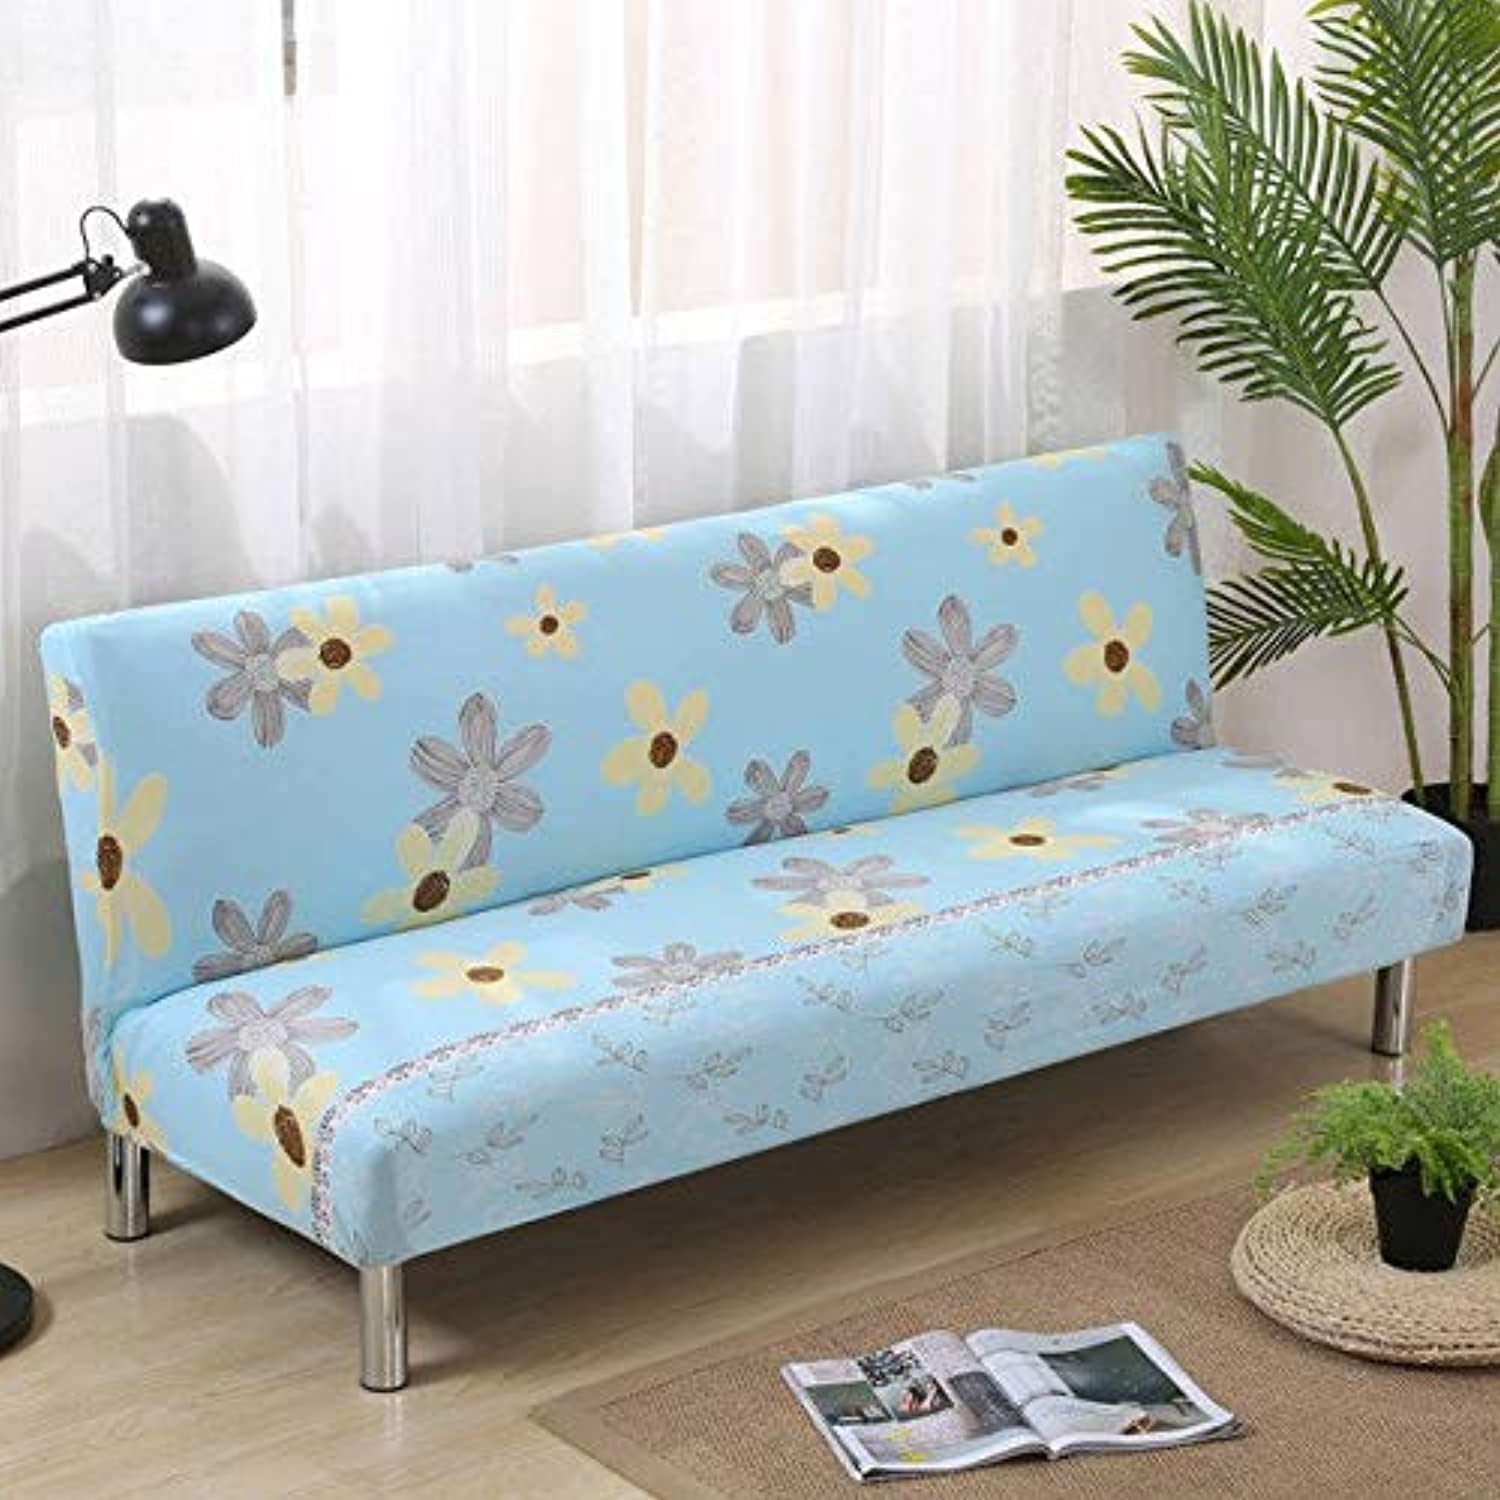 Elastic Sofa Bed Covers for Living Room Sofa Towel Slip-Resistant Sofa Bed Cover Strech Slipcover   colour20, 160cm to 200cm